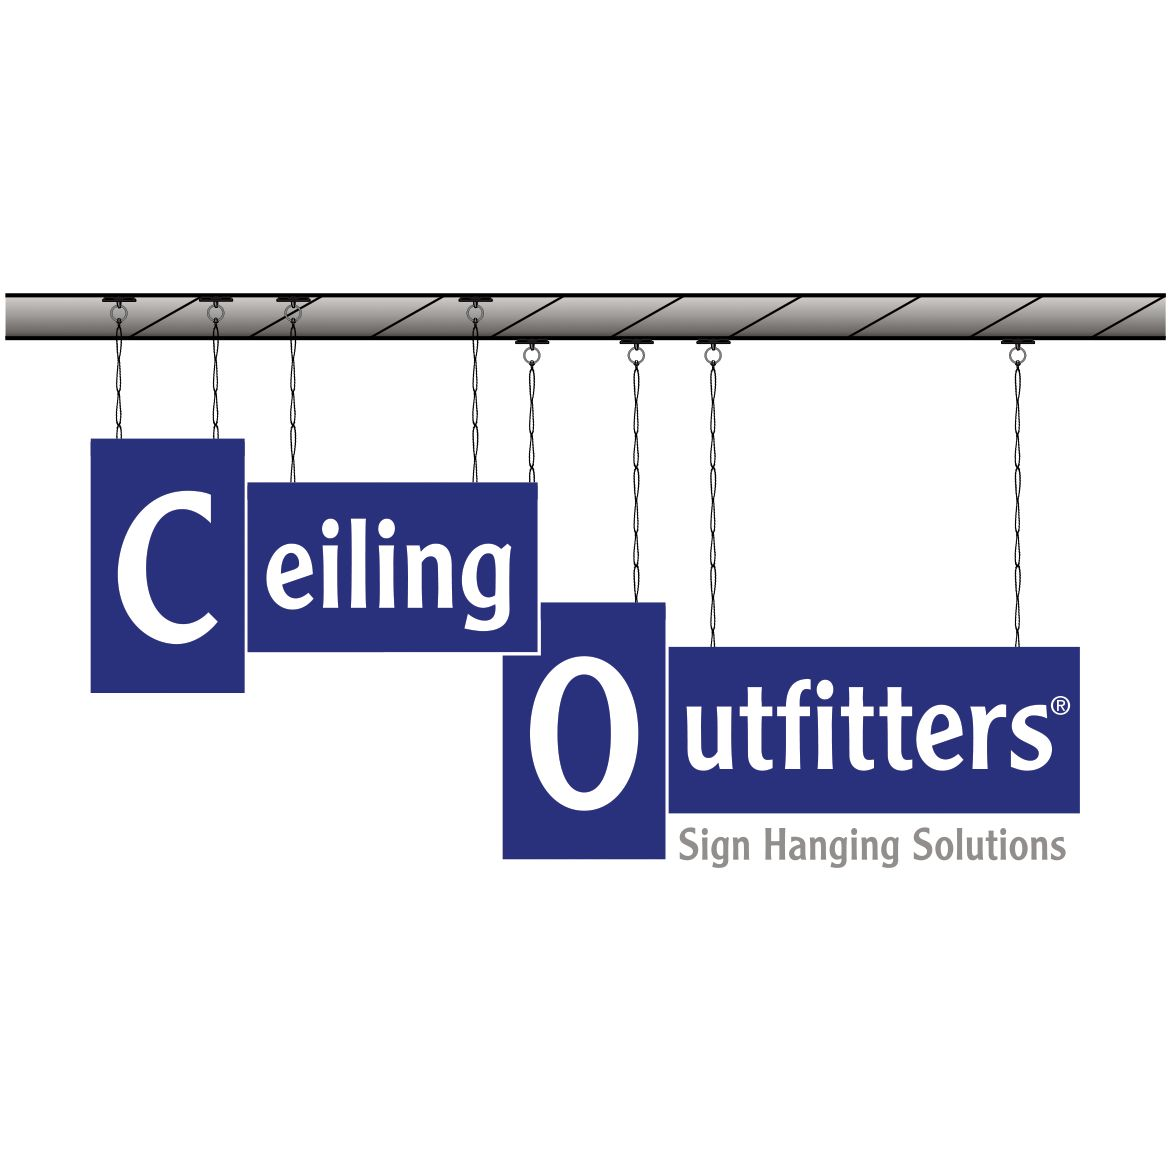 Ceiling Outfitters-Sign Hanging Solutions